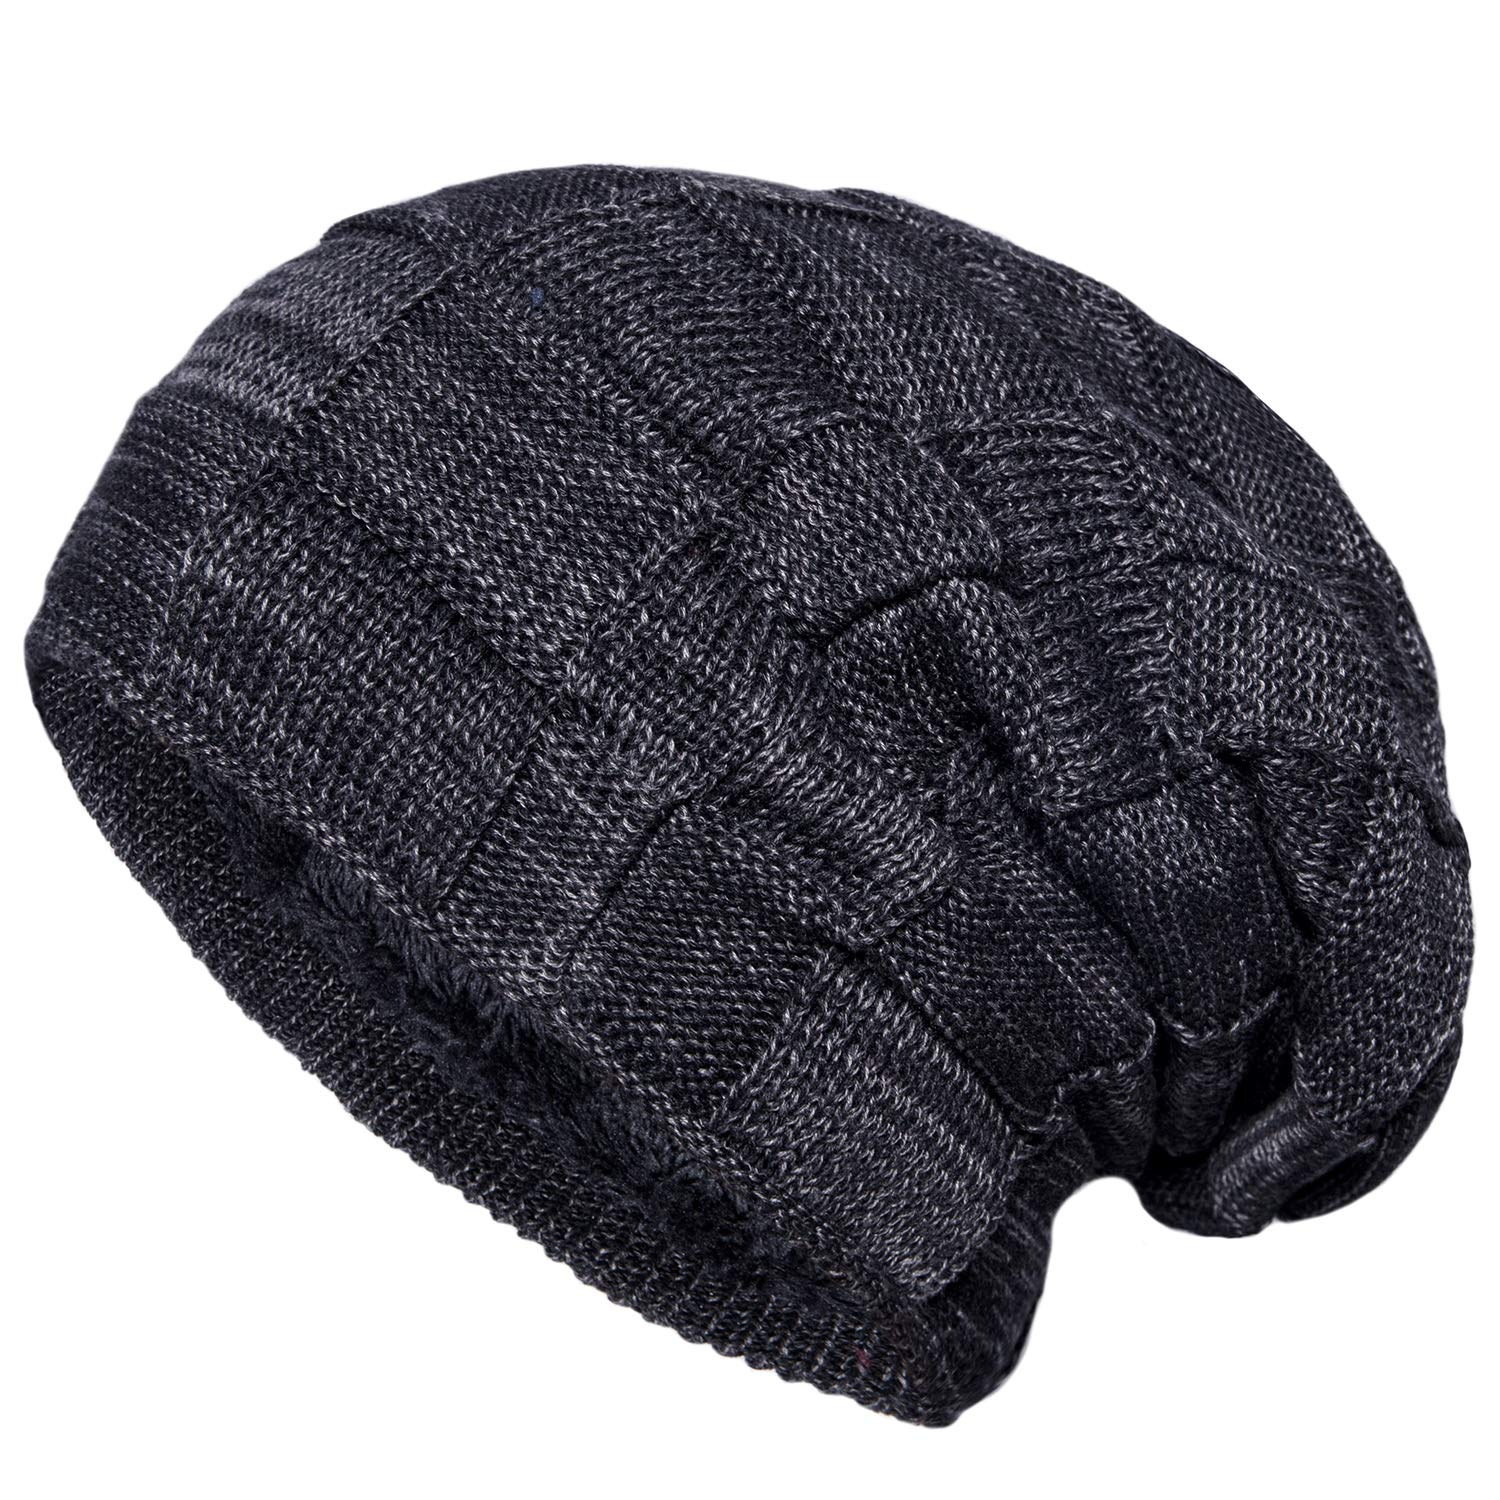 b61a826eb49 Senker Slouchy Beanie Knit Cap Winter Soft Thick Warm Hats for Men and Women  product image